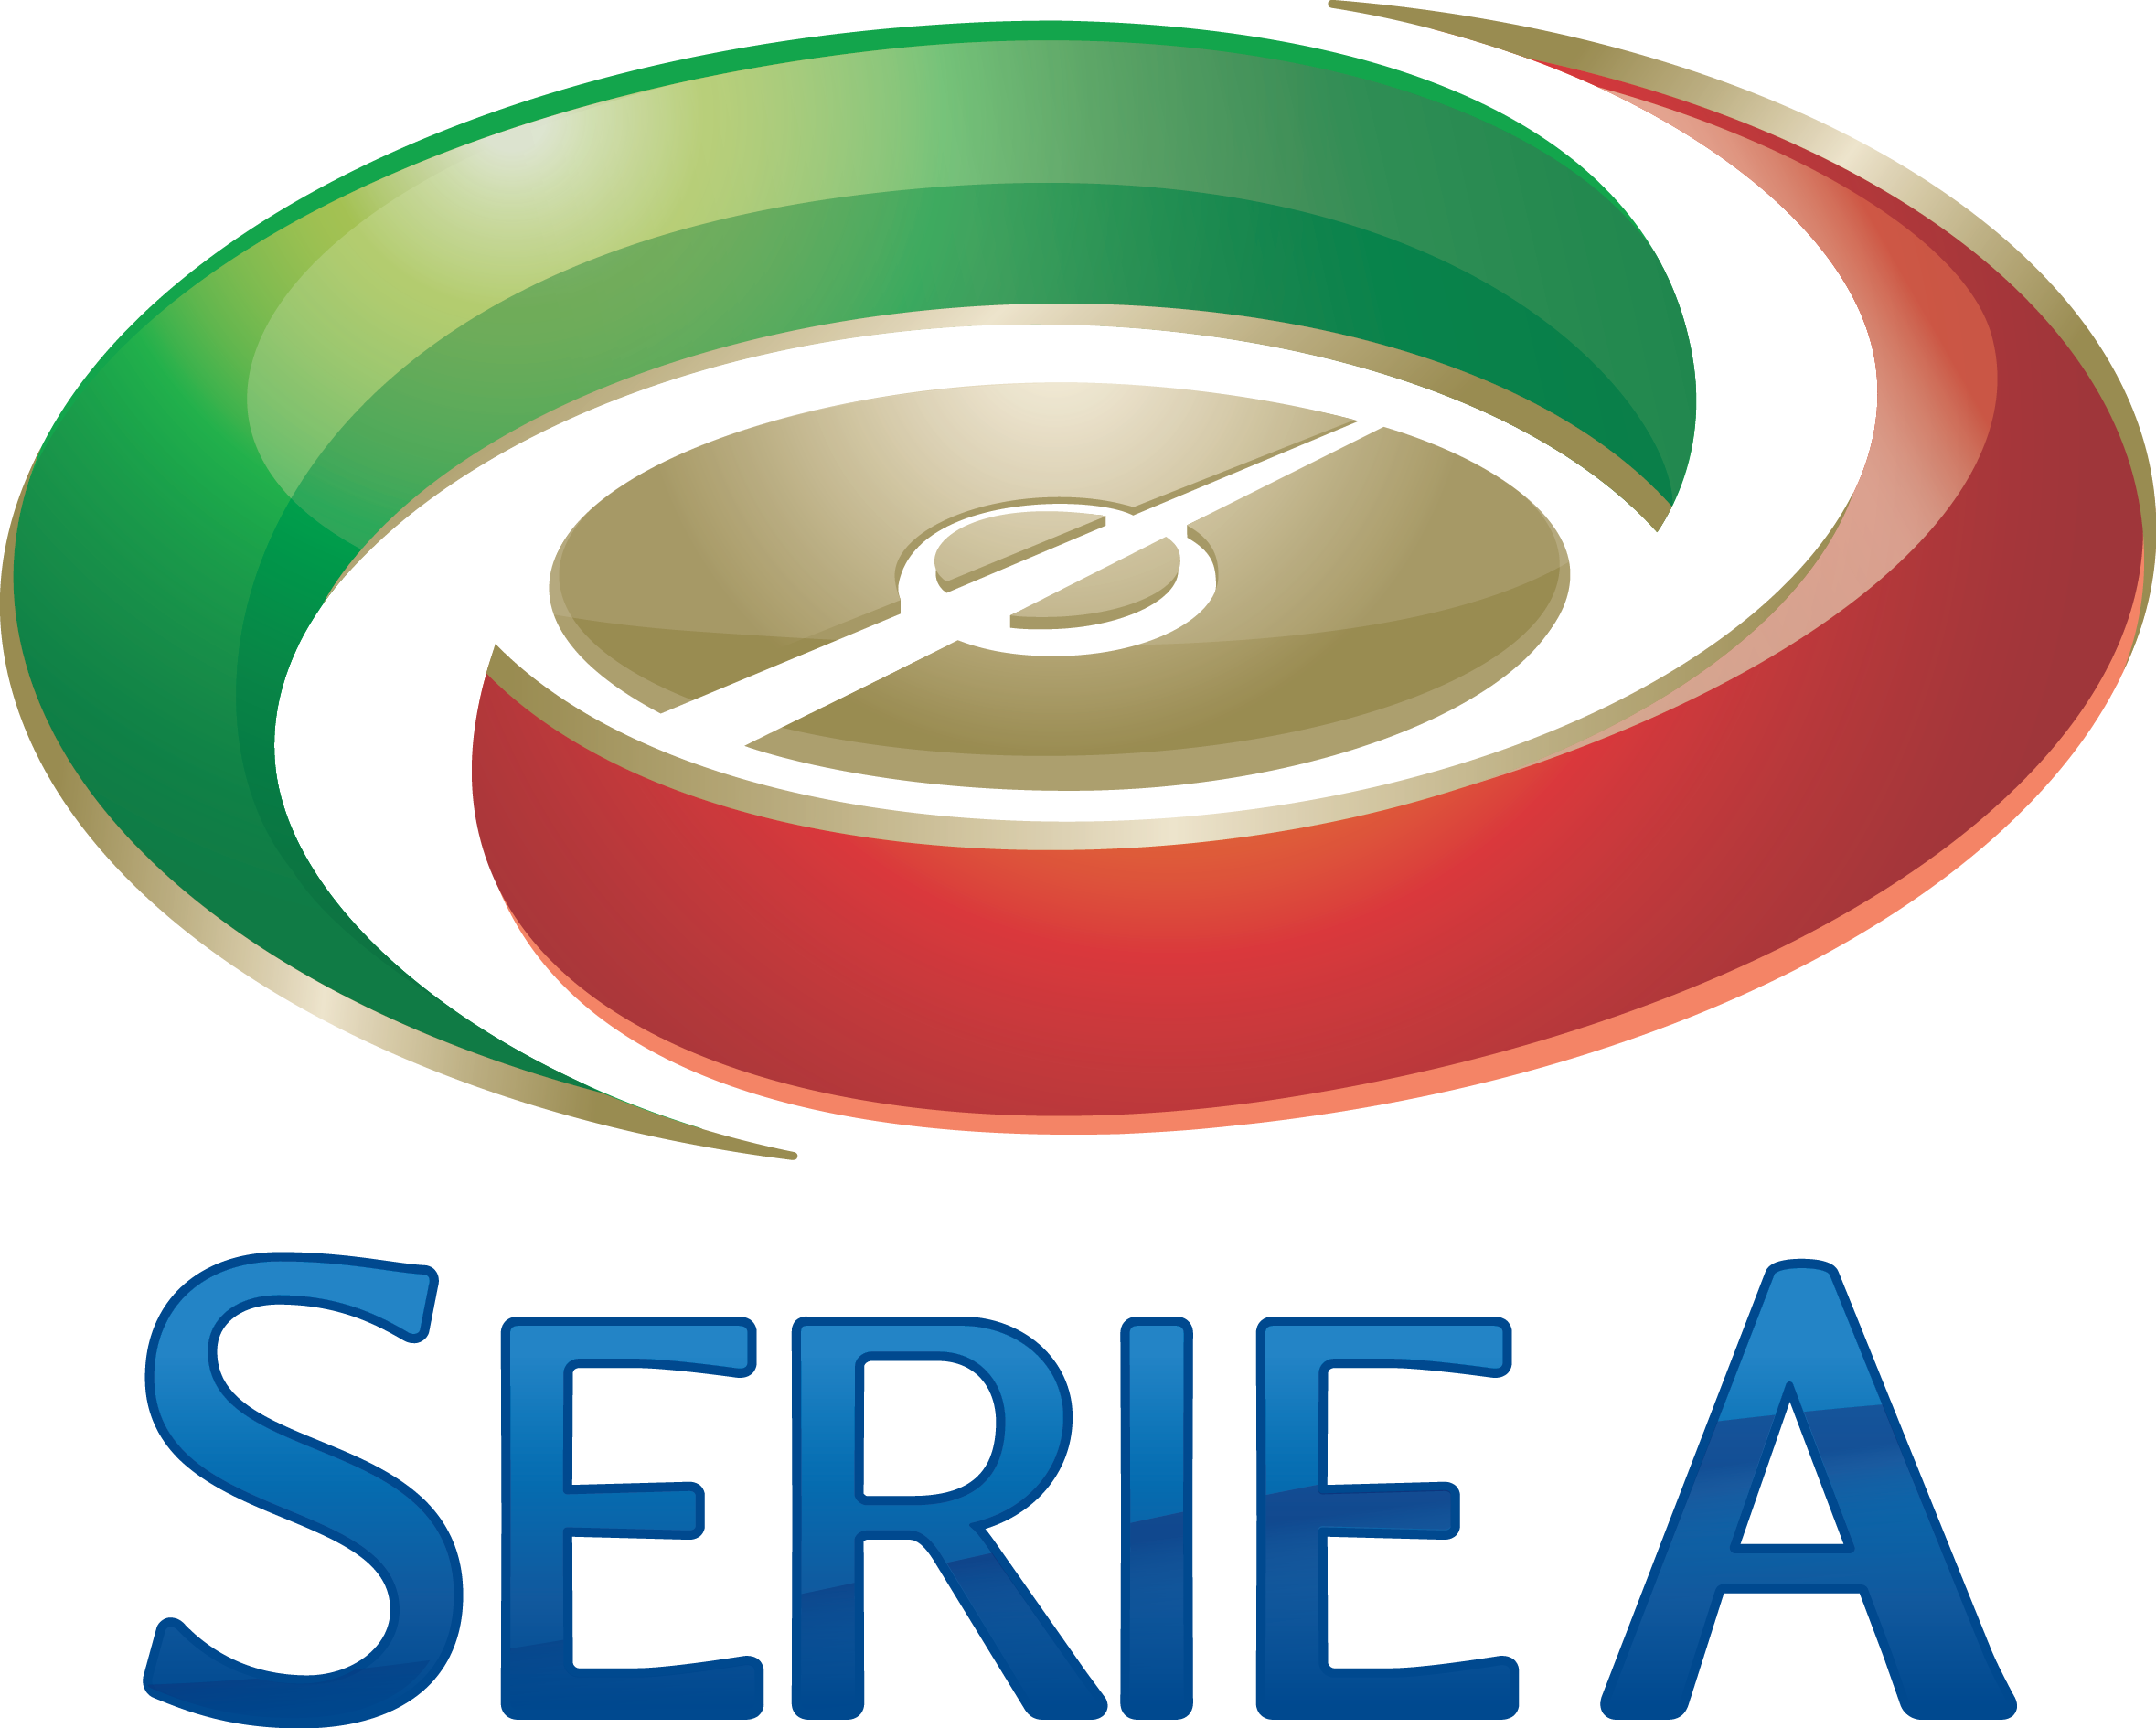 Lazio vs Roma 1-2 All goals and highlights 25/05/2015